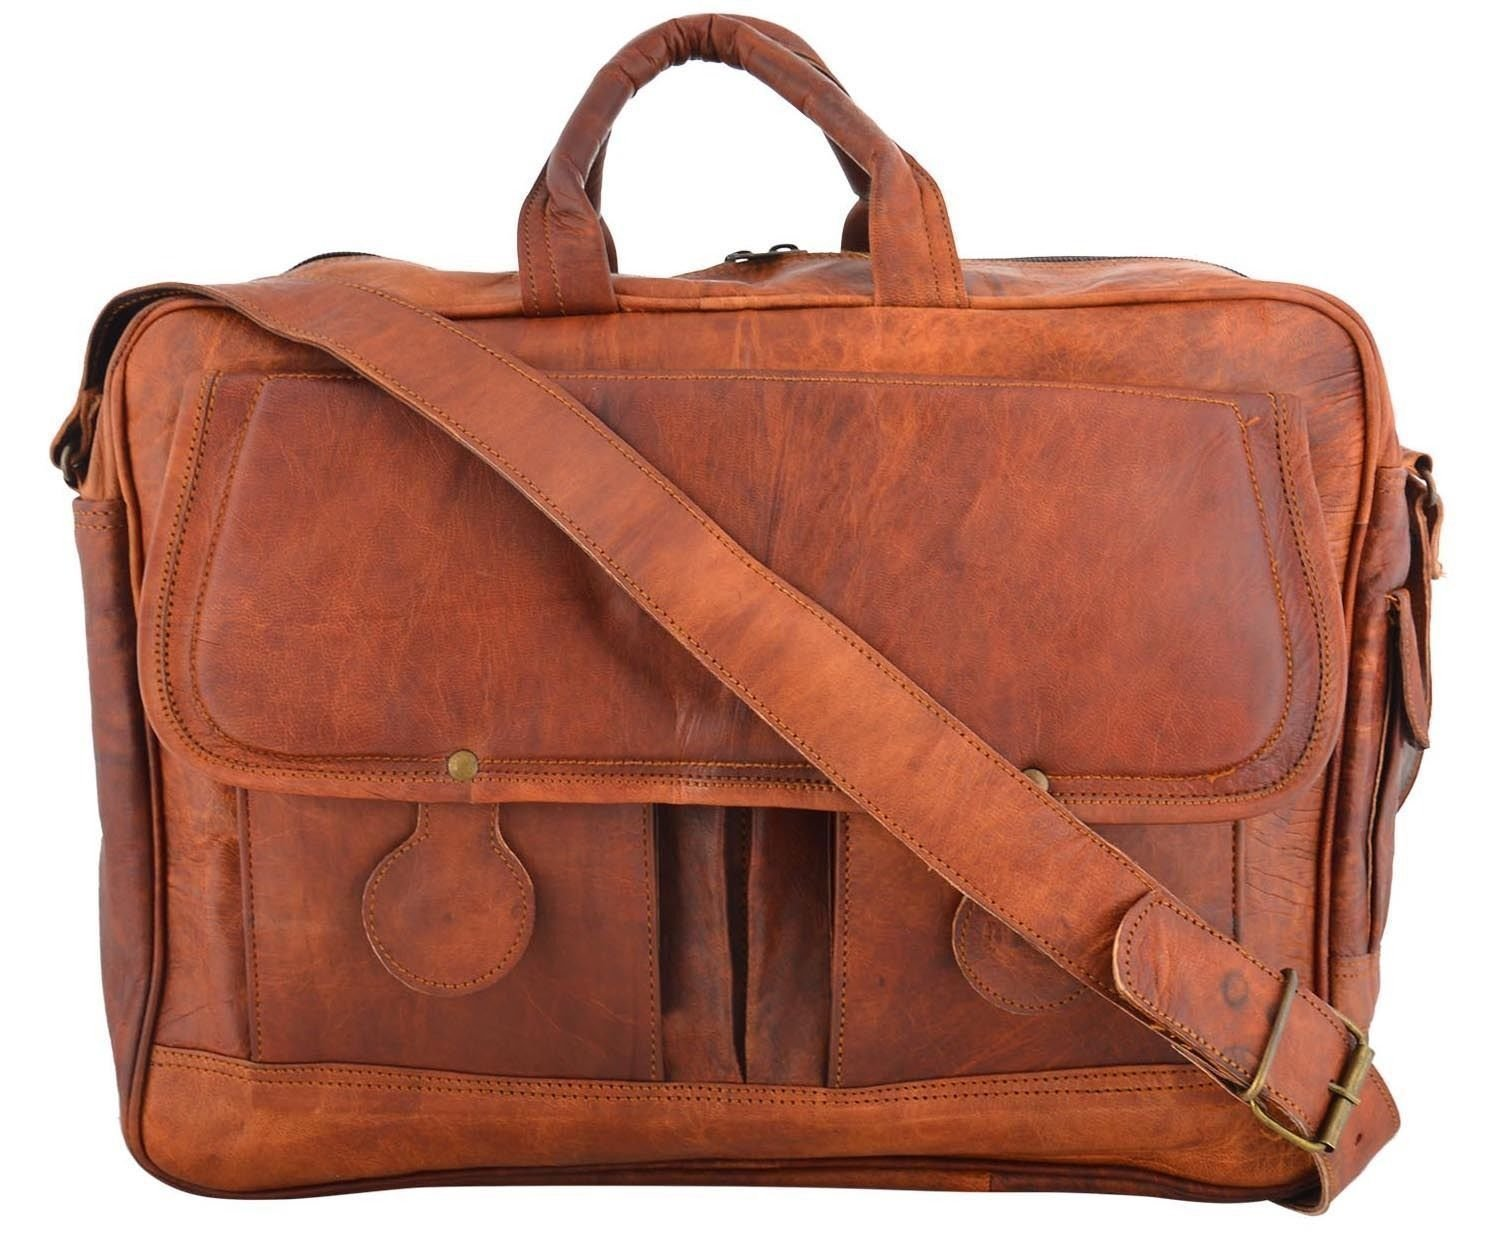 Shakun Leather Messenger Bag Briefcase Laptop Bag Computer Shoulder Satchel NEW